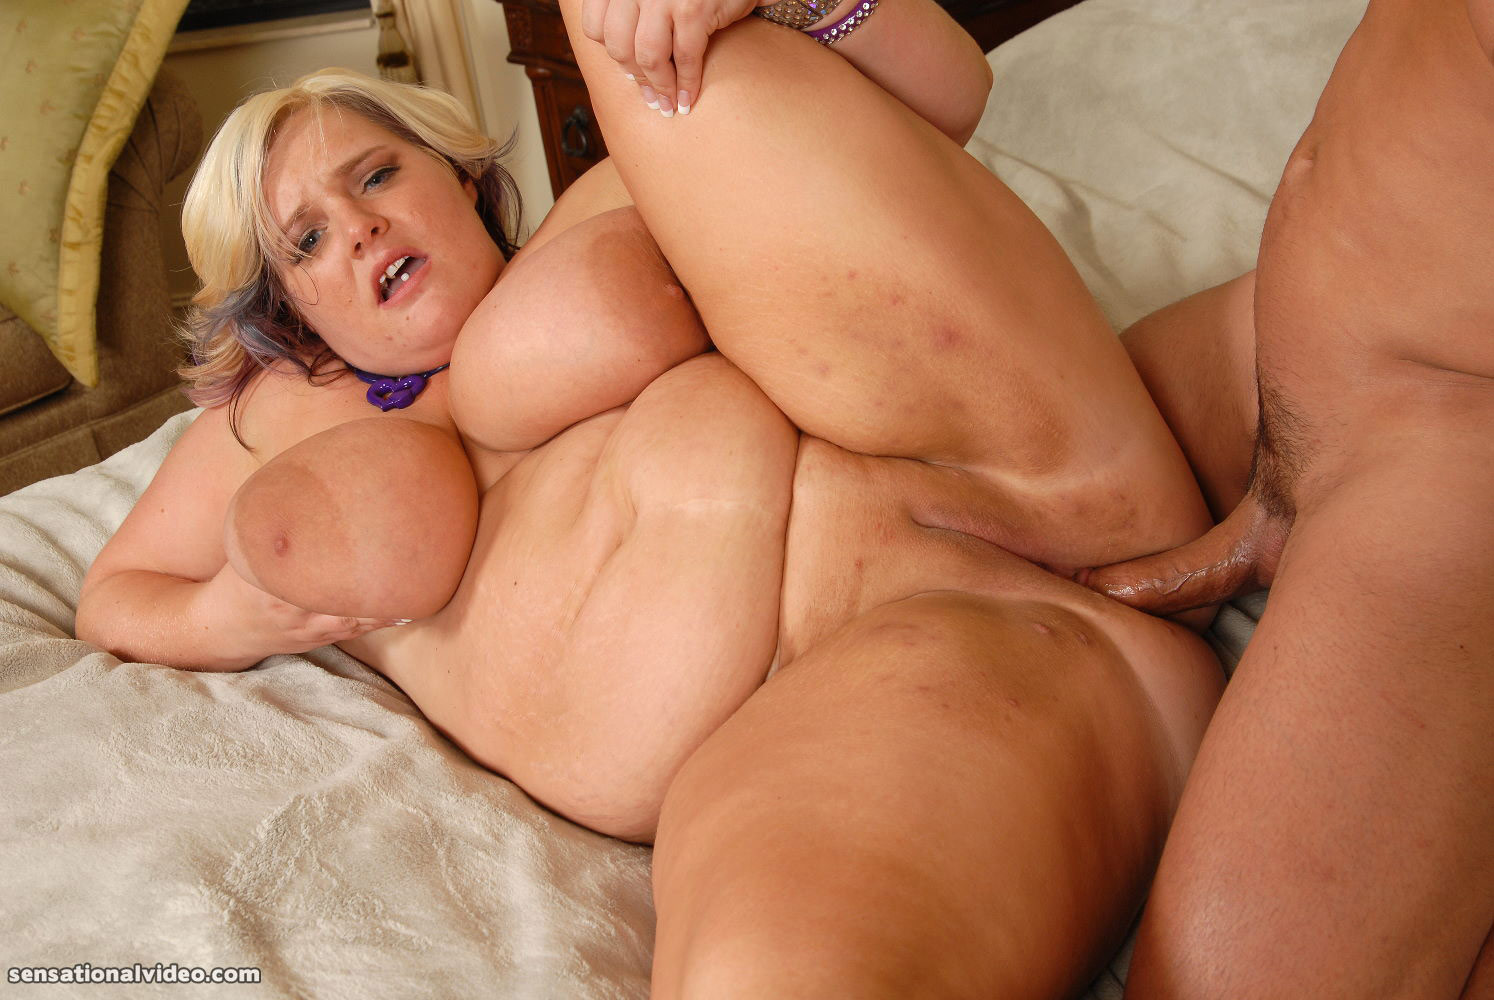 the Milf gagging gangbang slut load nothing exceed than